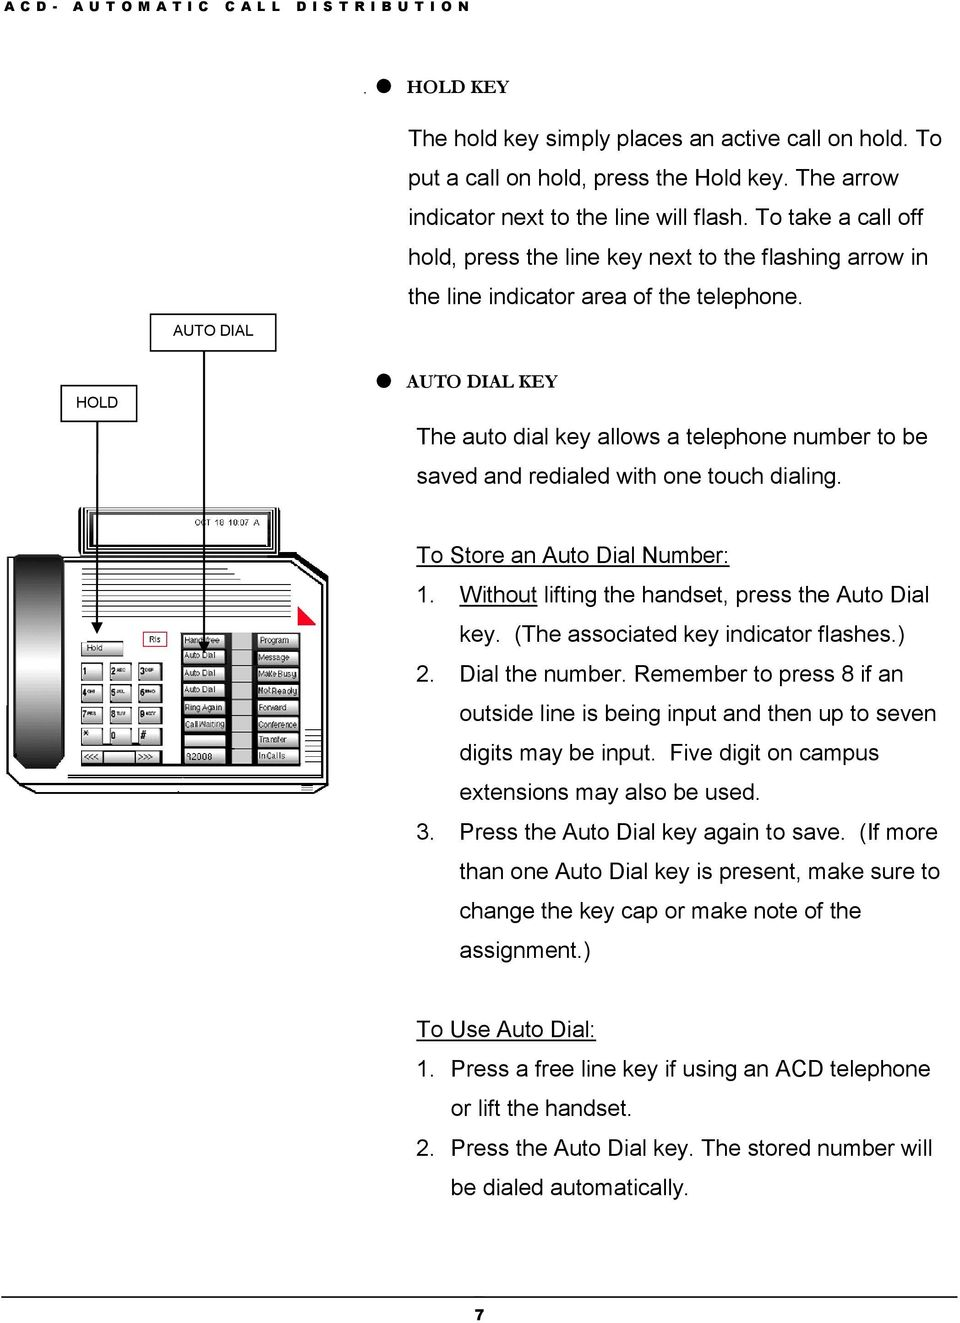 HOLD AUTO DIAL KEY The auto dial key allows a telephone number to be saved and redialed with one touch dialing. To Store an Auto Dial Number: 1. Without lifting the handset, press the Auto Dial key.